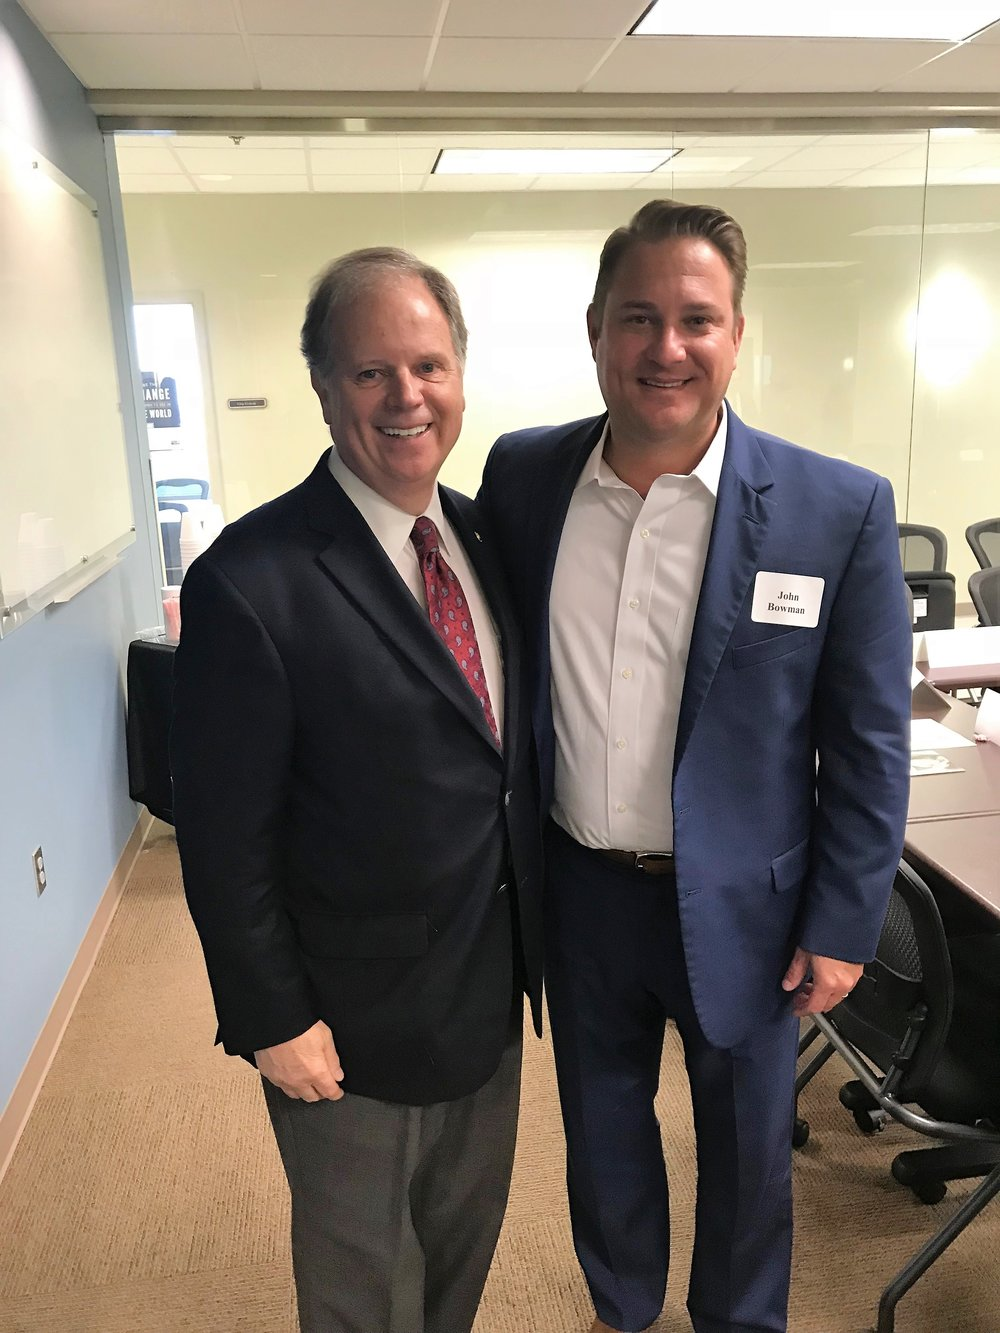 CEO John Bowman (right) meets with U.S. Senator Doug Jones (left)